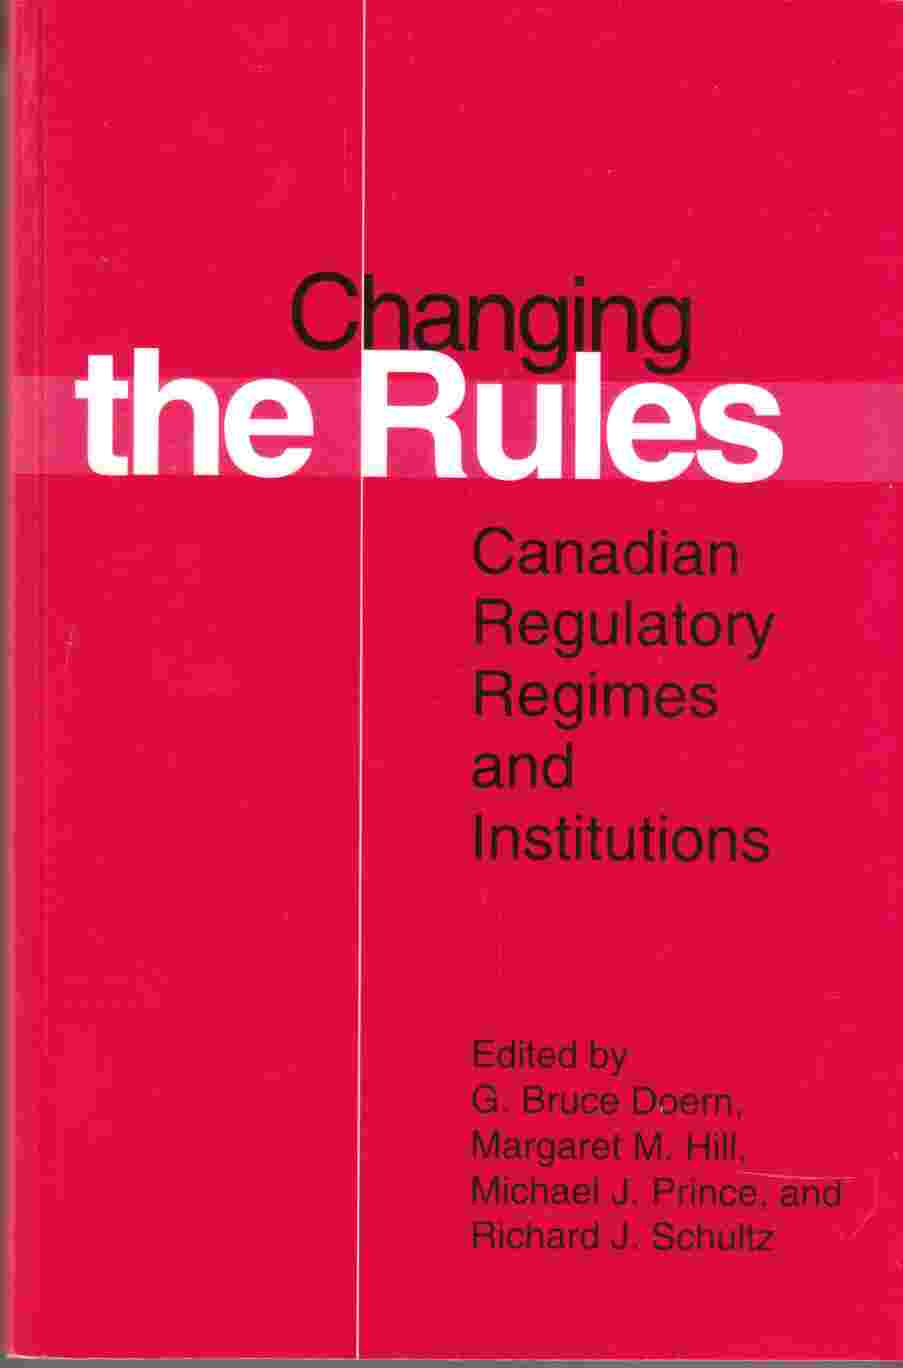 Image for Changing the Rules Canadian Regulatory Regimes and Institutions